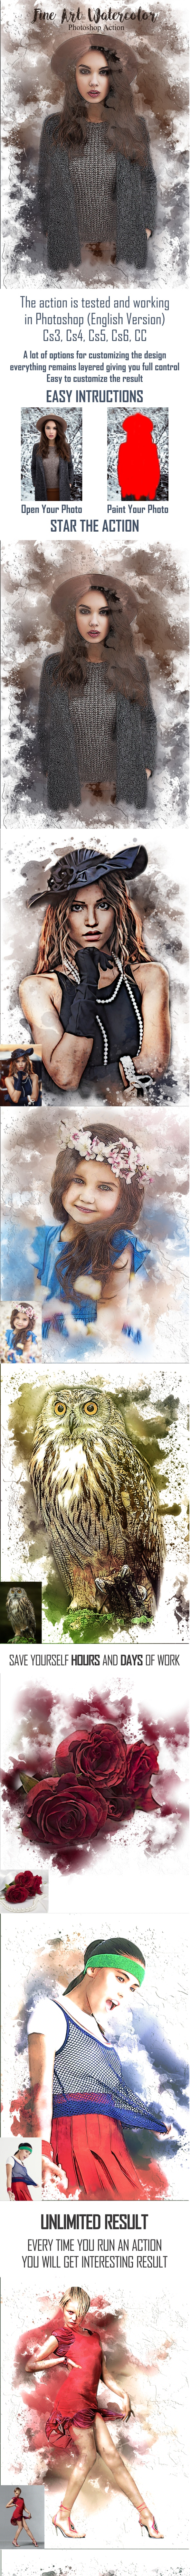 Fine Art Watercolor Photoshop Action - Photo Effects Actions